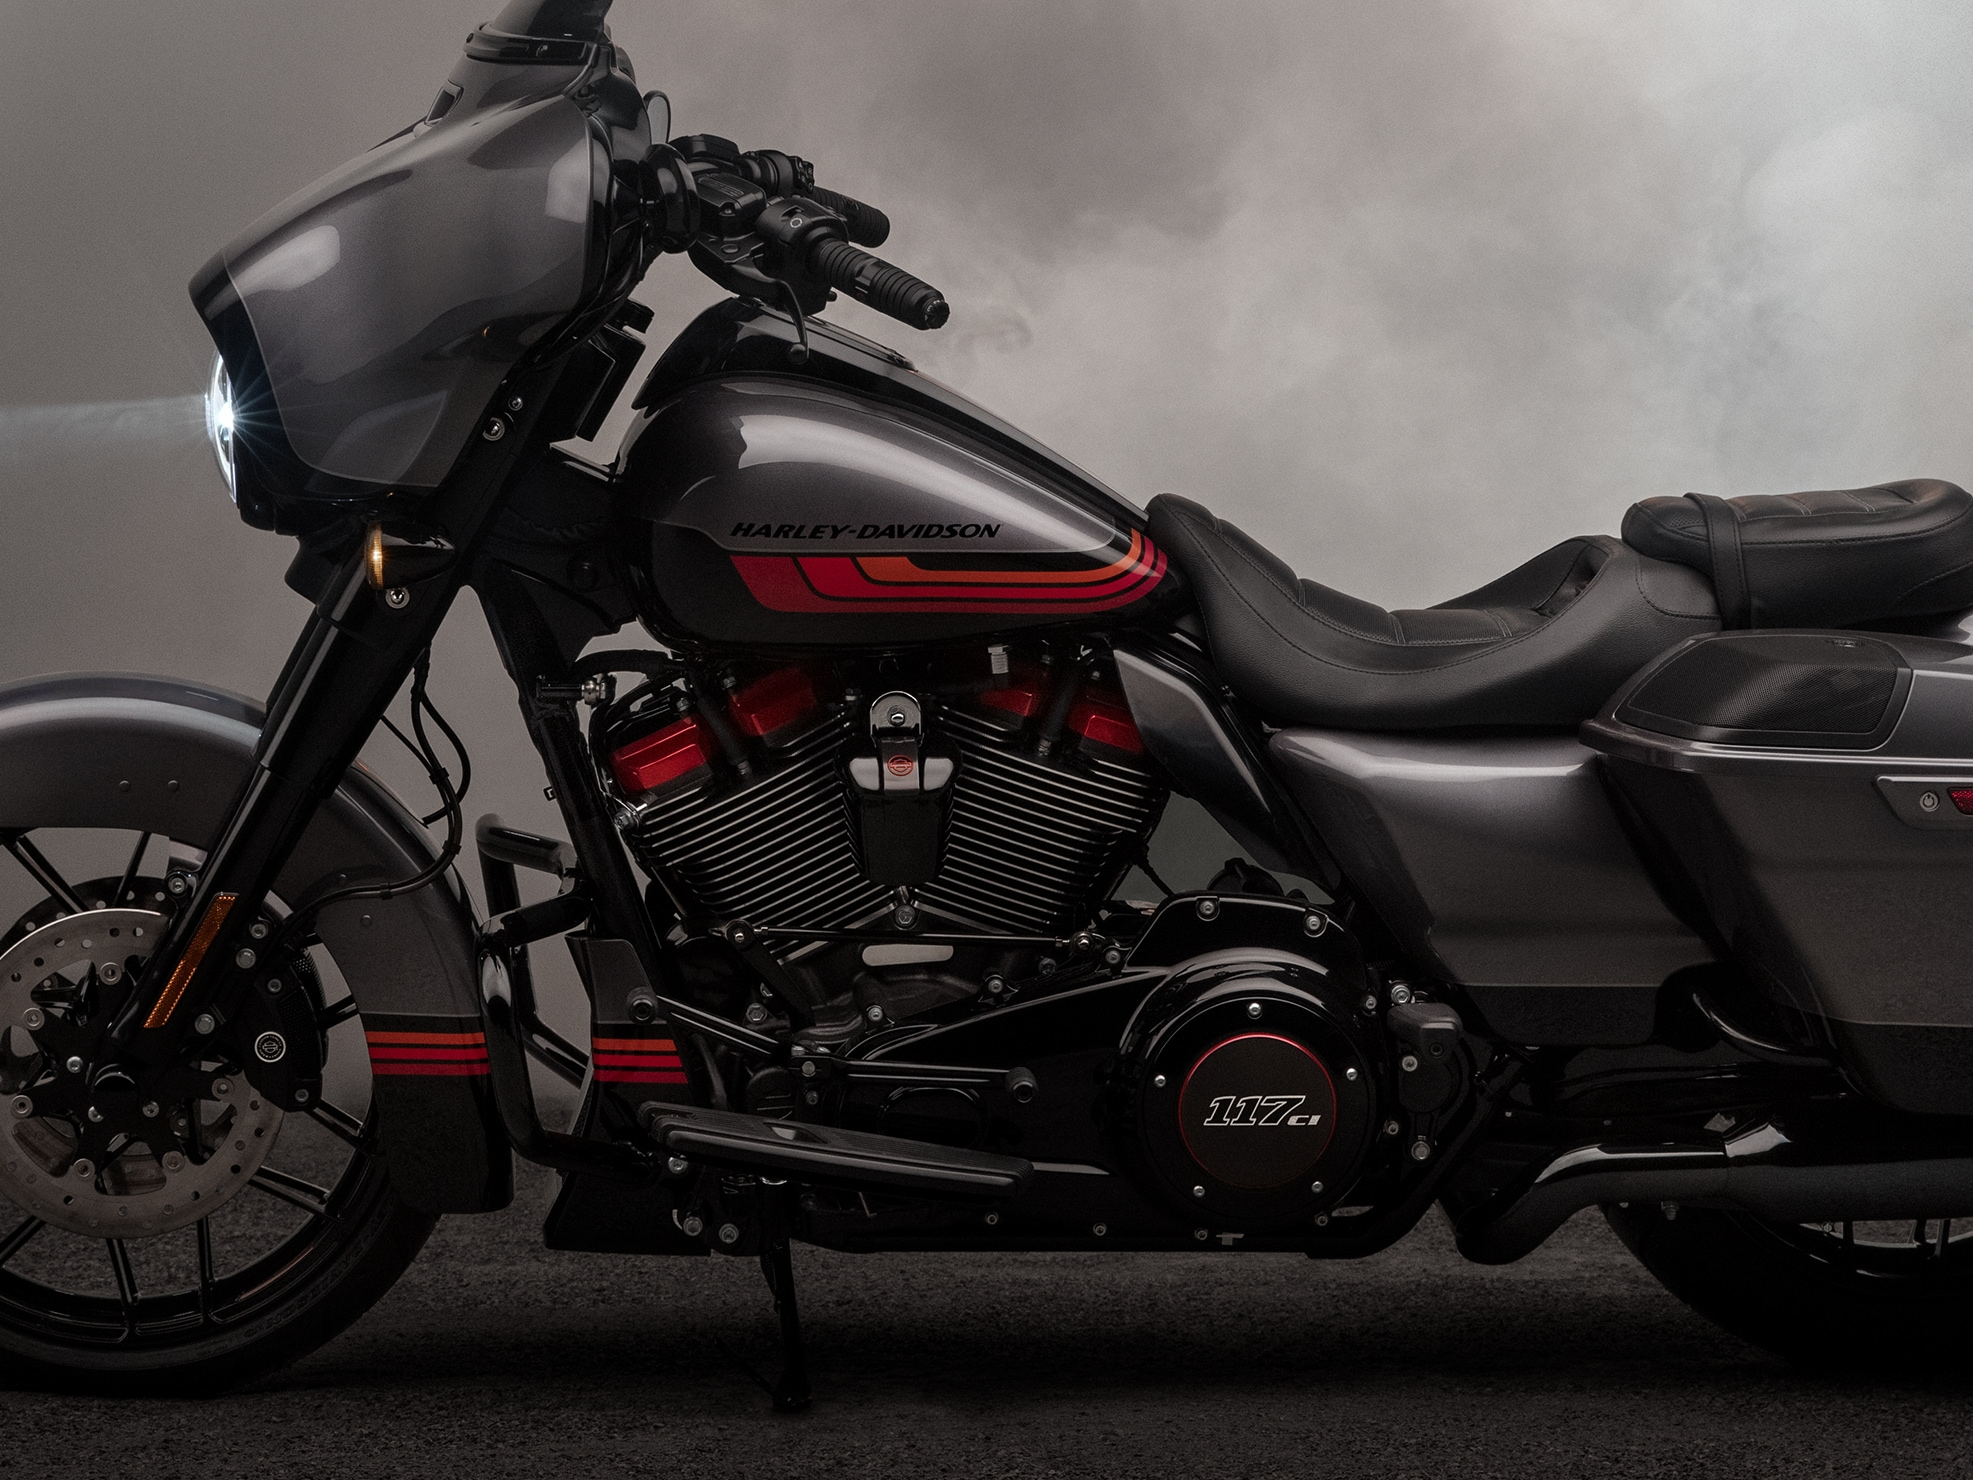 LED Turn Signals And LED Lighting Surround On 2019 CVO Limited H-D Motorcycle